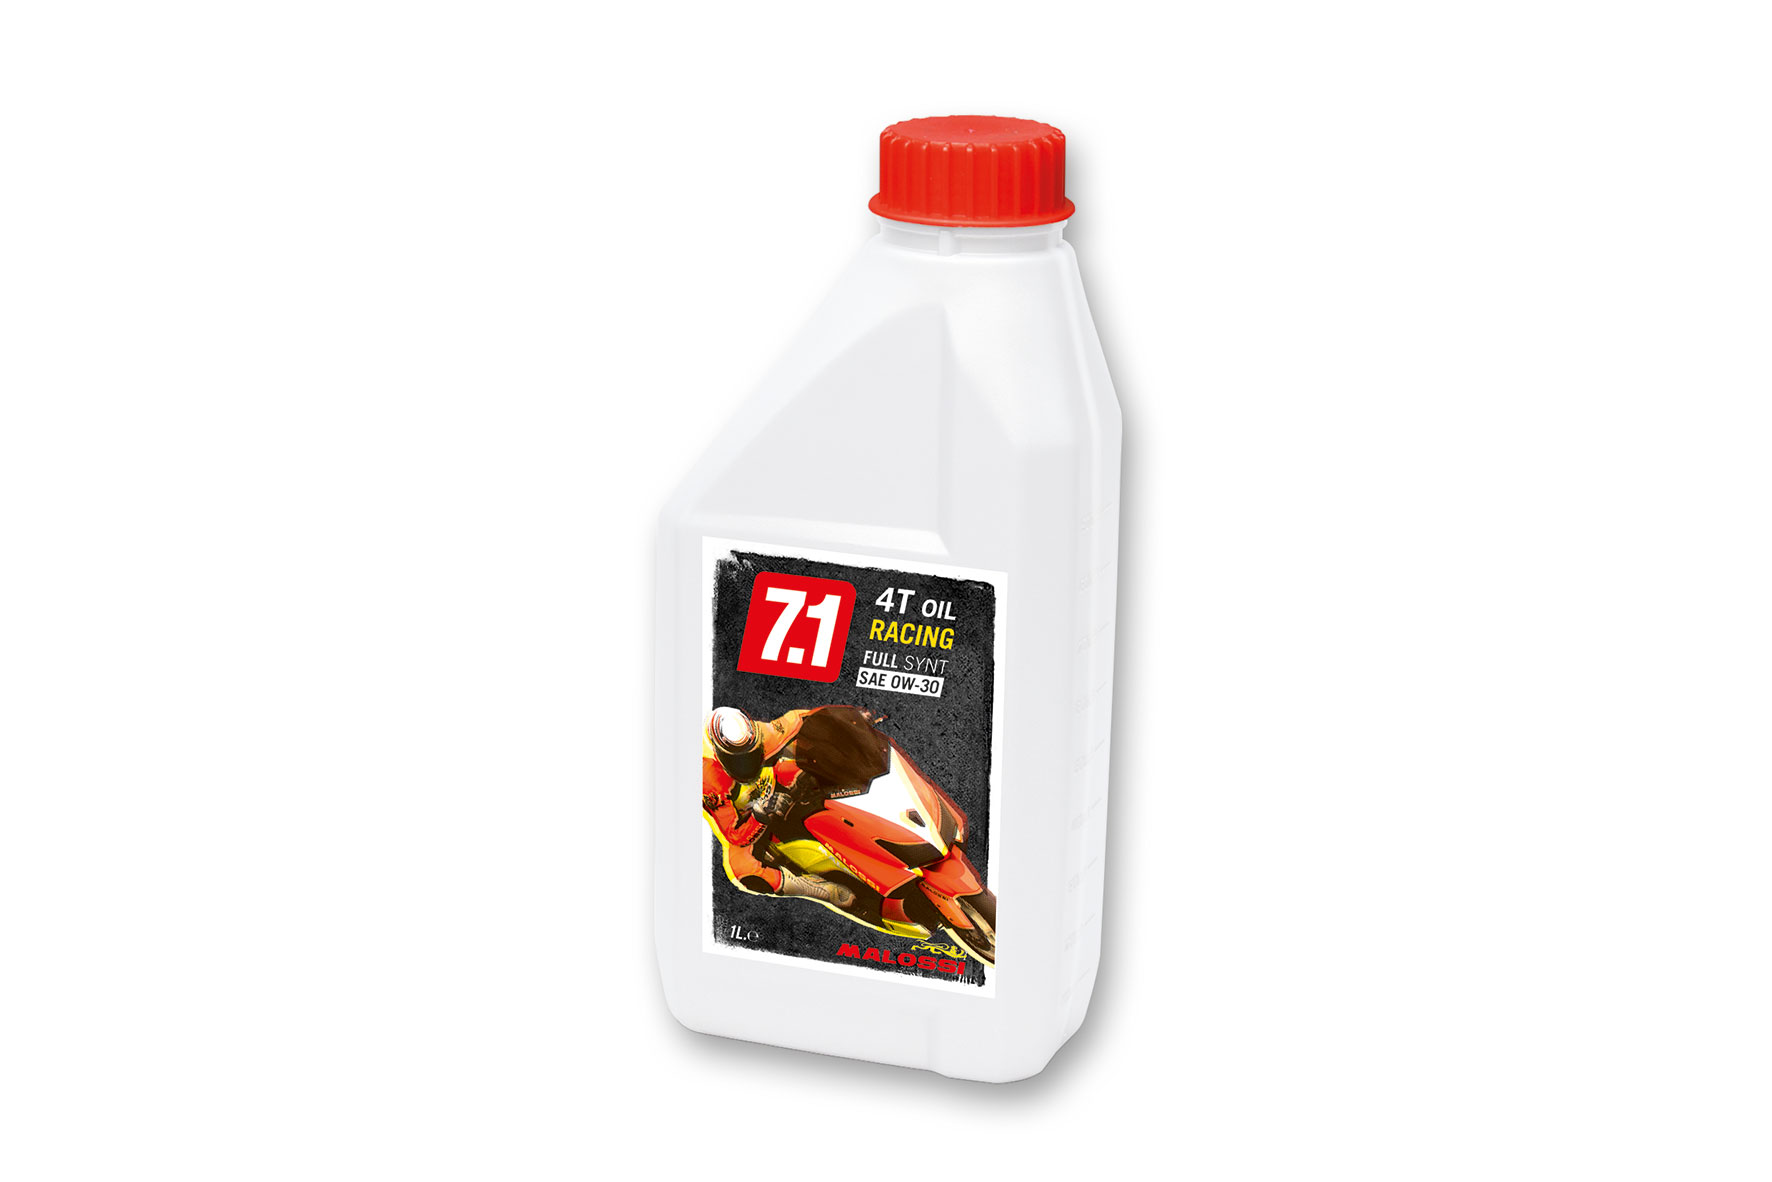 BOTTLE 7.1 4T OIL RACING Full Synt (SAE 0W-30) 1L